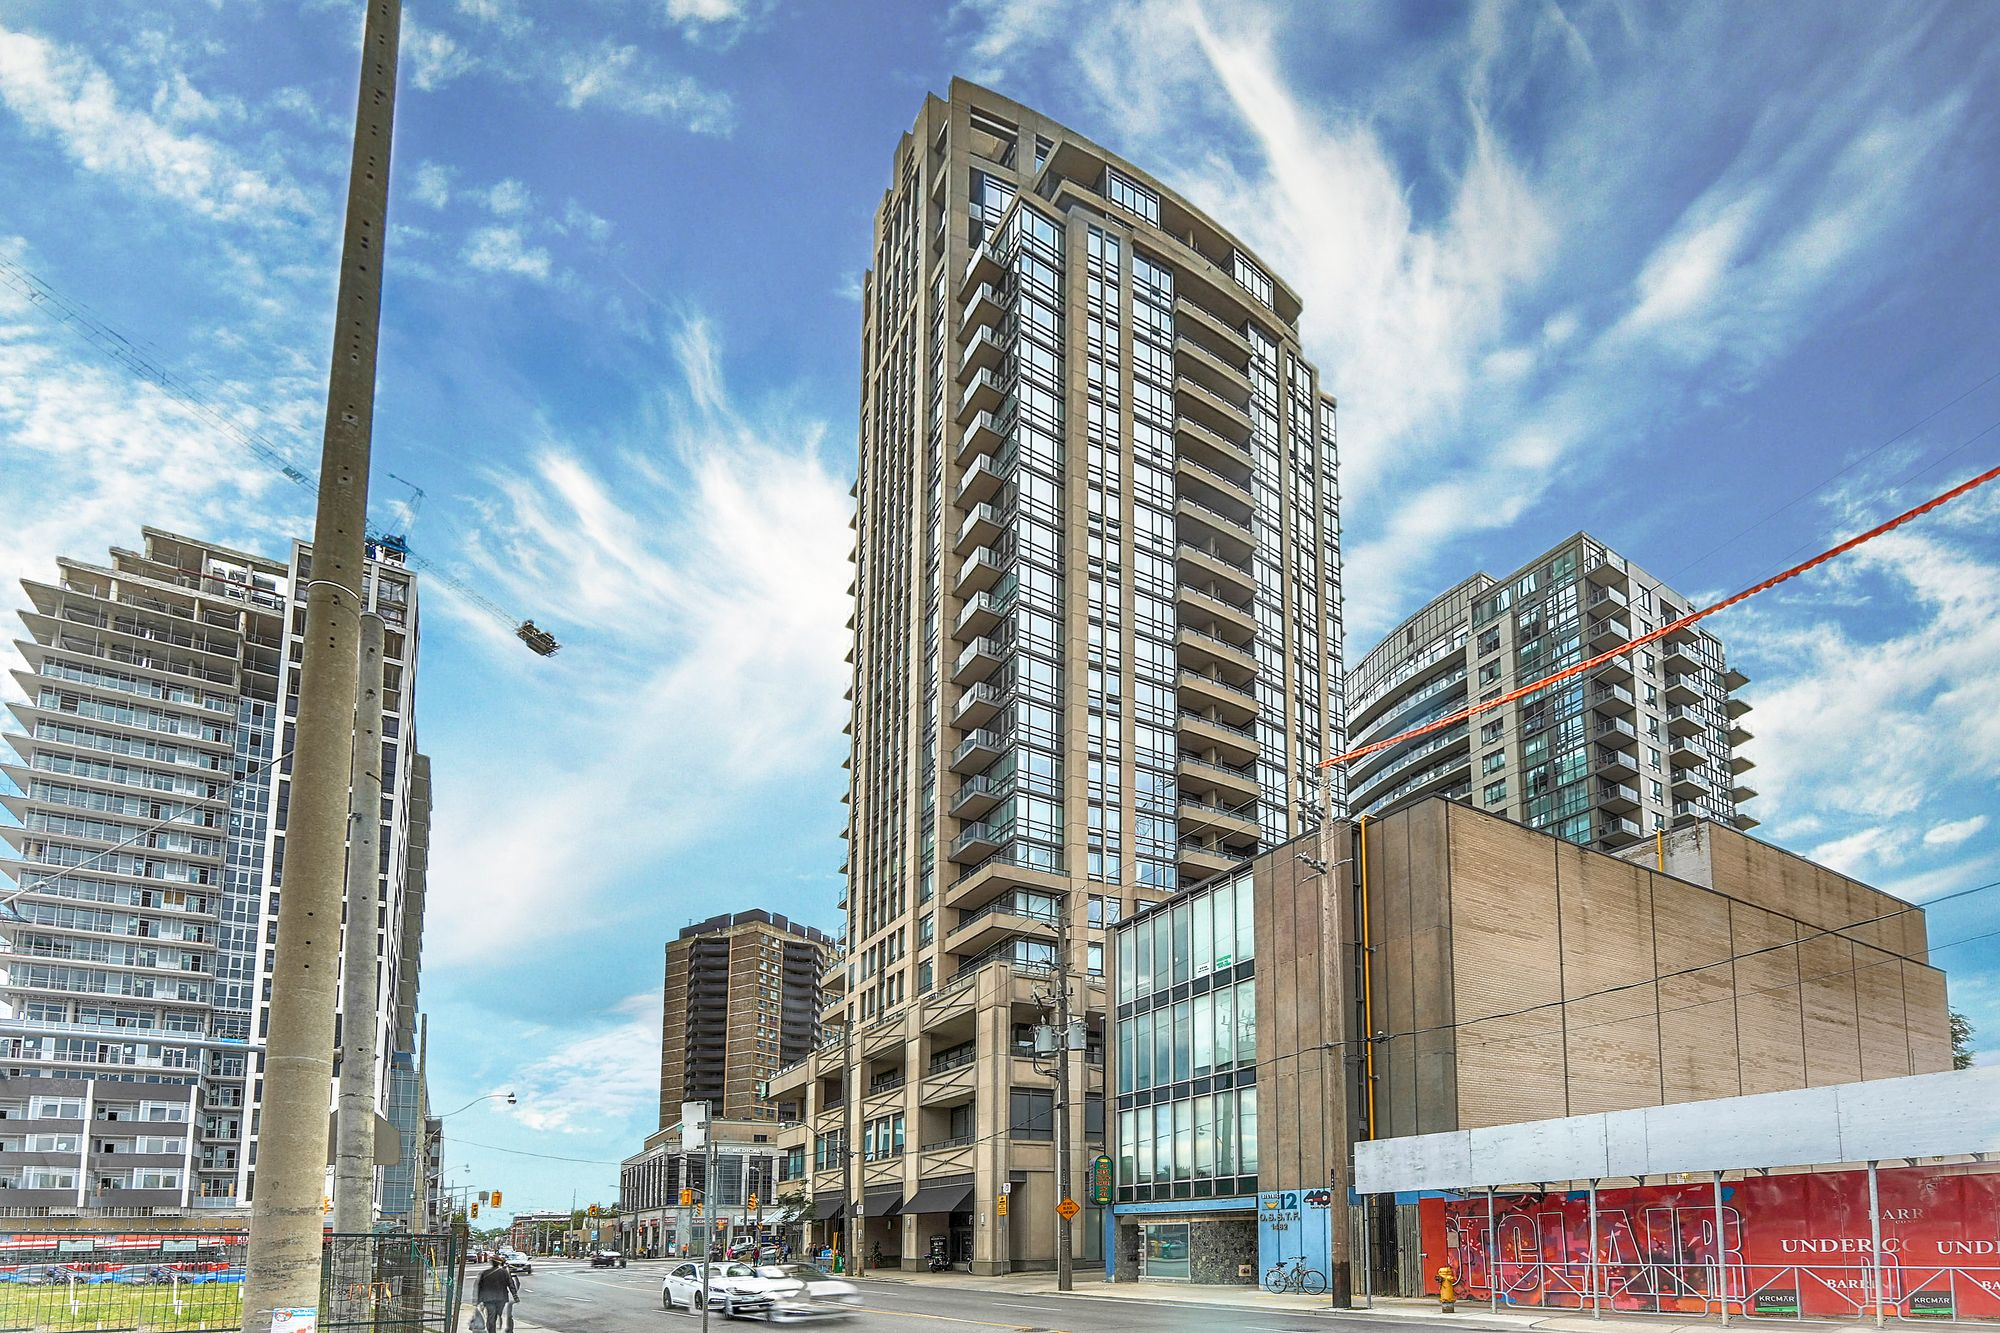 The Forest Hill at 500 St Clair Ave W. This condo is located in  Midtown, Toronto - image #2 of 7 by Strata.ca